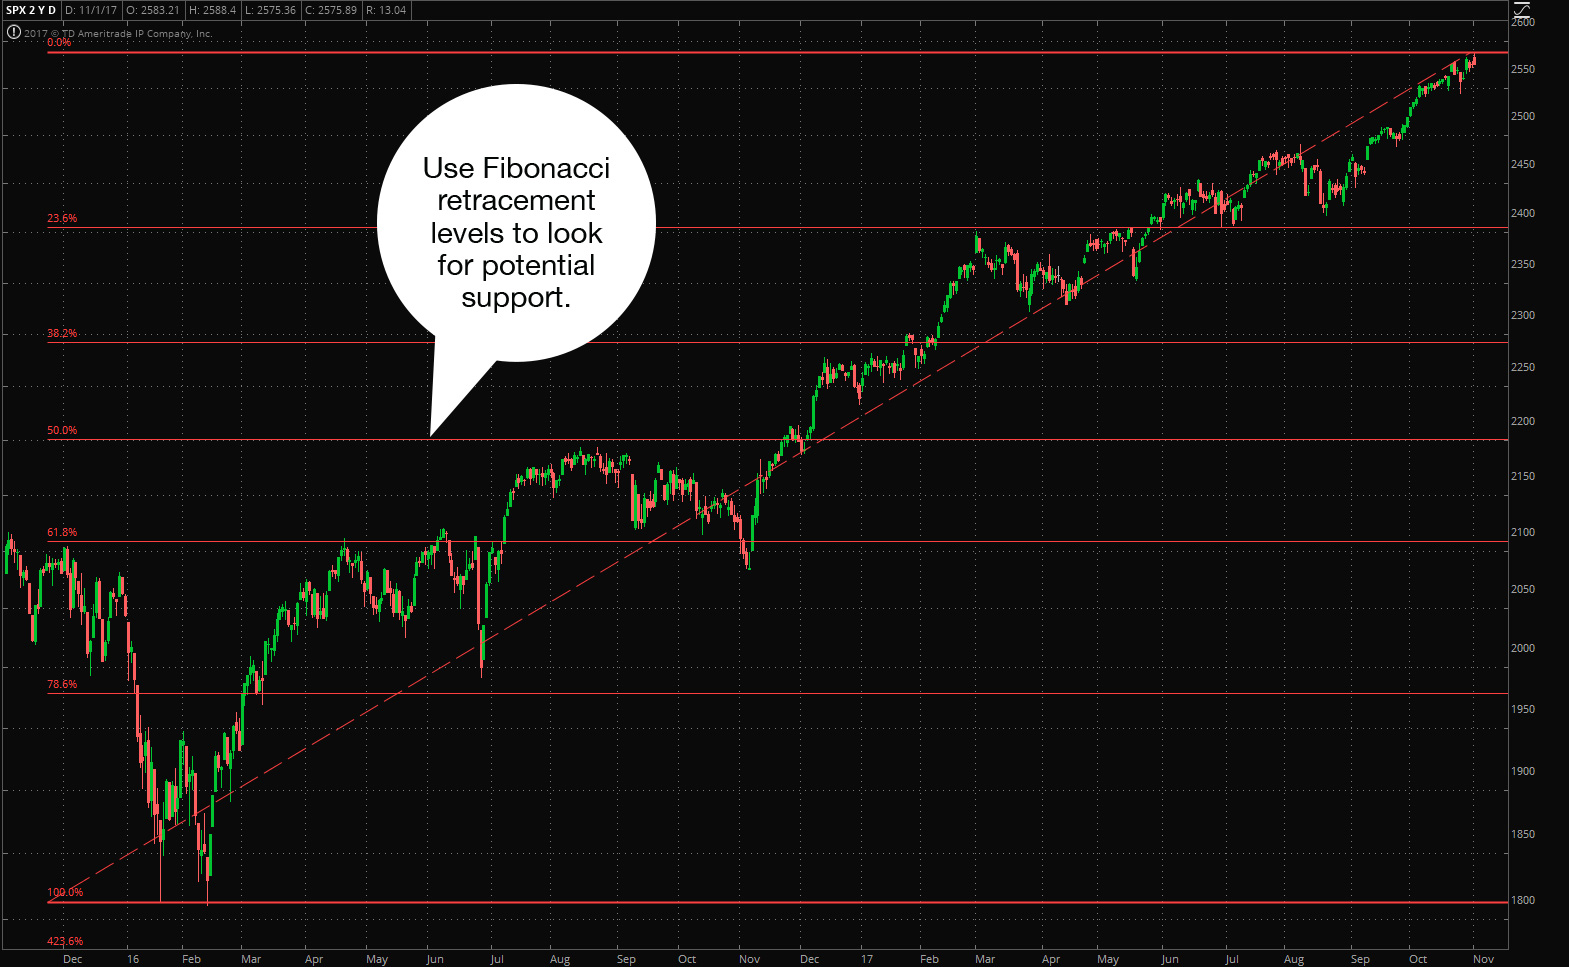 Fibonacci retracements may indicate support and resistance levels